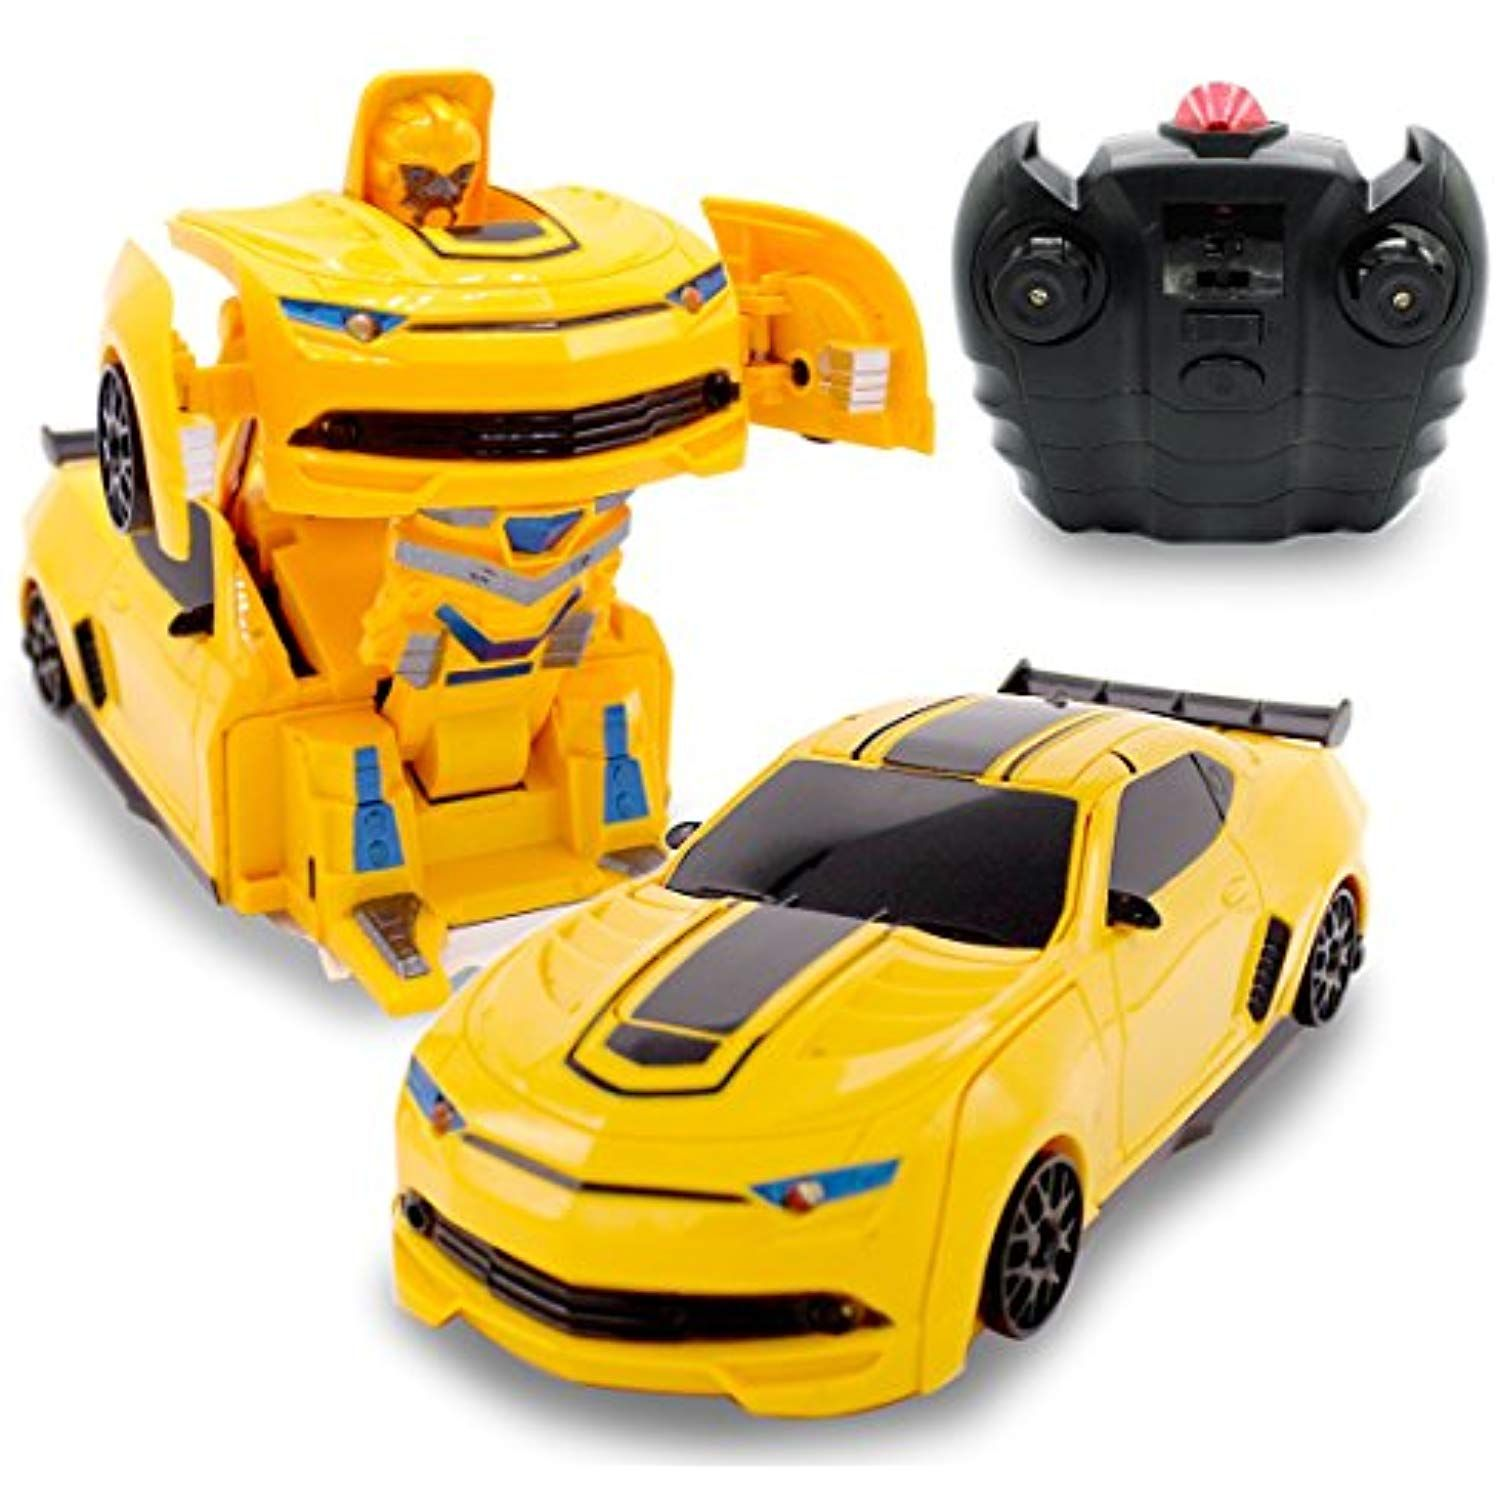 Small RC Toy Transforming Robot Remote Control (3 band